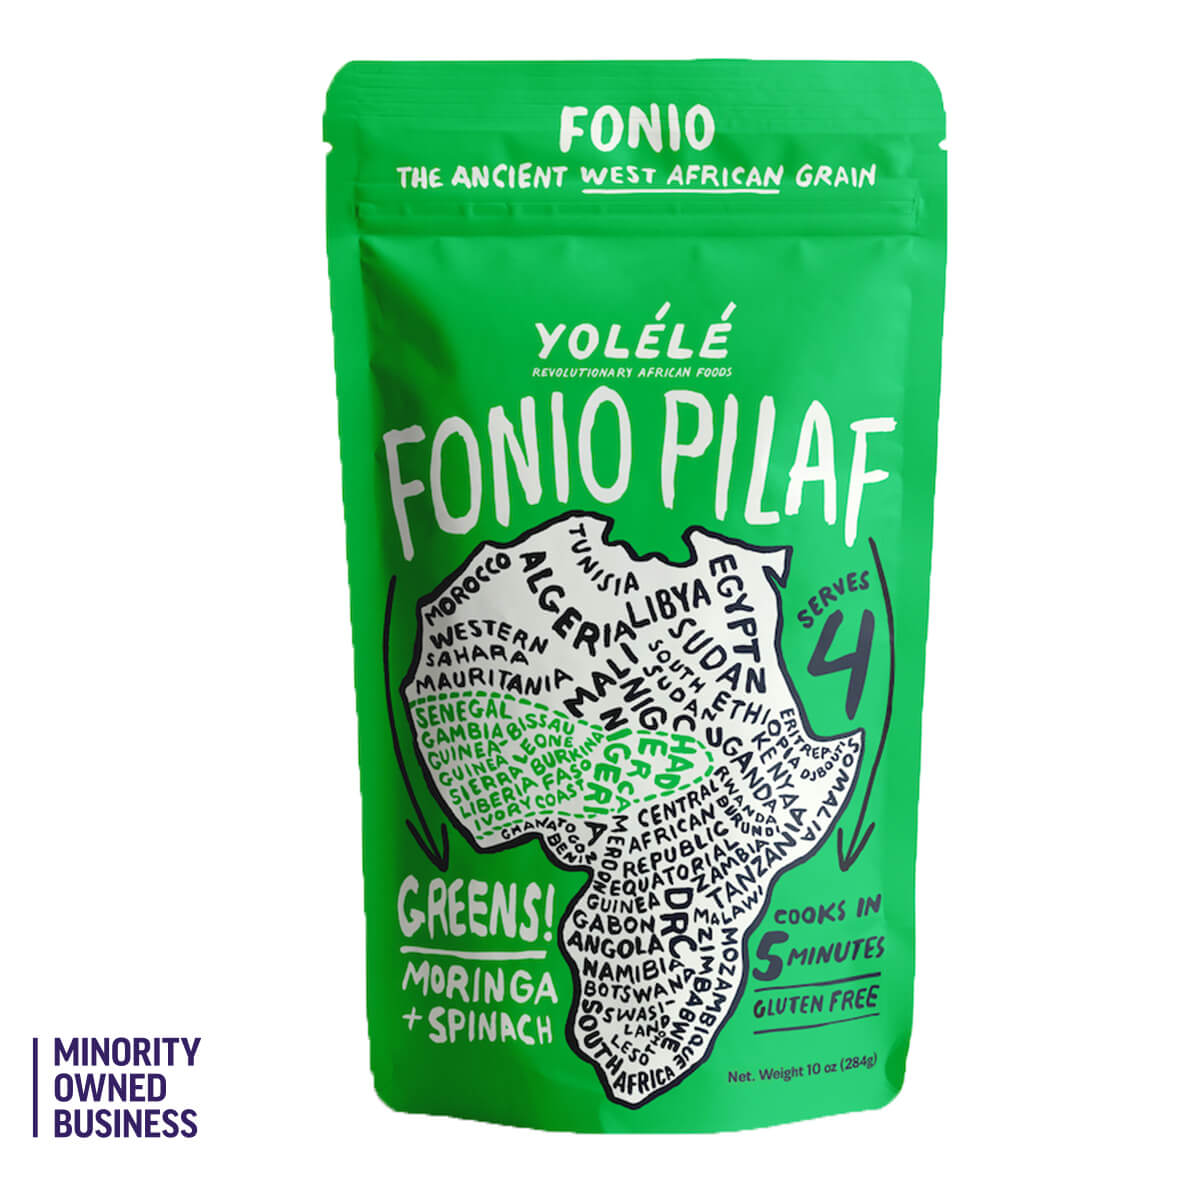 Yolele Greens Fonio Pilaf with moringa and spinach, gluten-free, kosher, vegan, and non-GMO. 4 servings per bag, 1 serving is 1/4 cup dry=1 cup cooked. Cooks in 5 minutes!